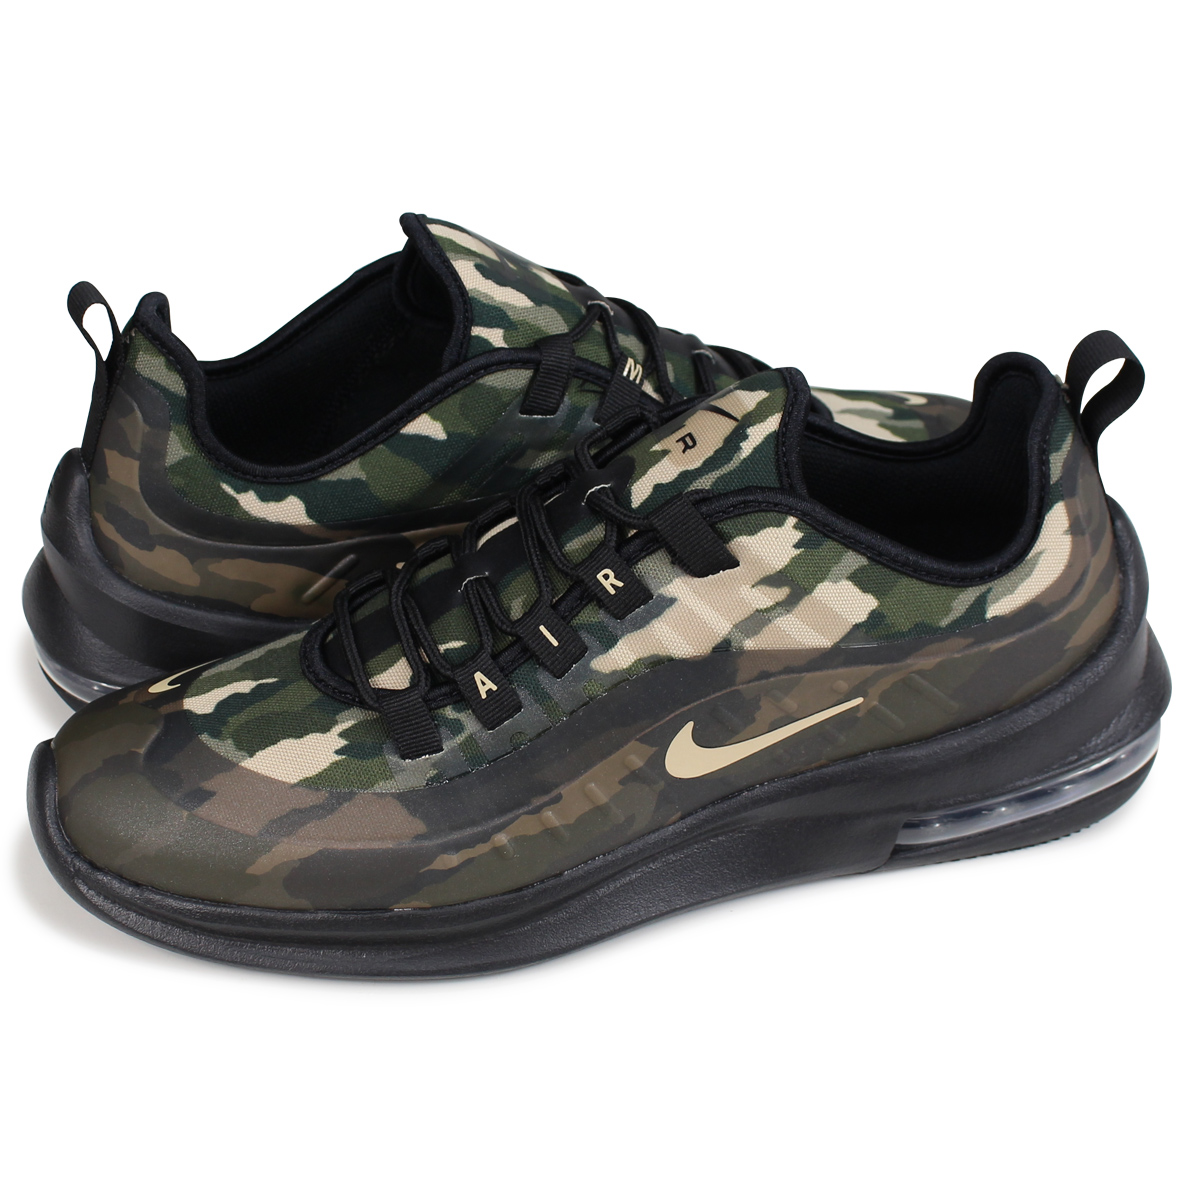 NIKE AIR MAX AXIS PREMIUM Kie Ney AMAX axis sneakers men AA2148 002 duck [load planned Shinnyu load in reservation product 97 containing]